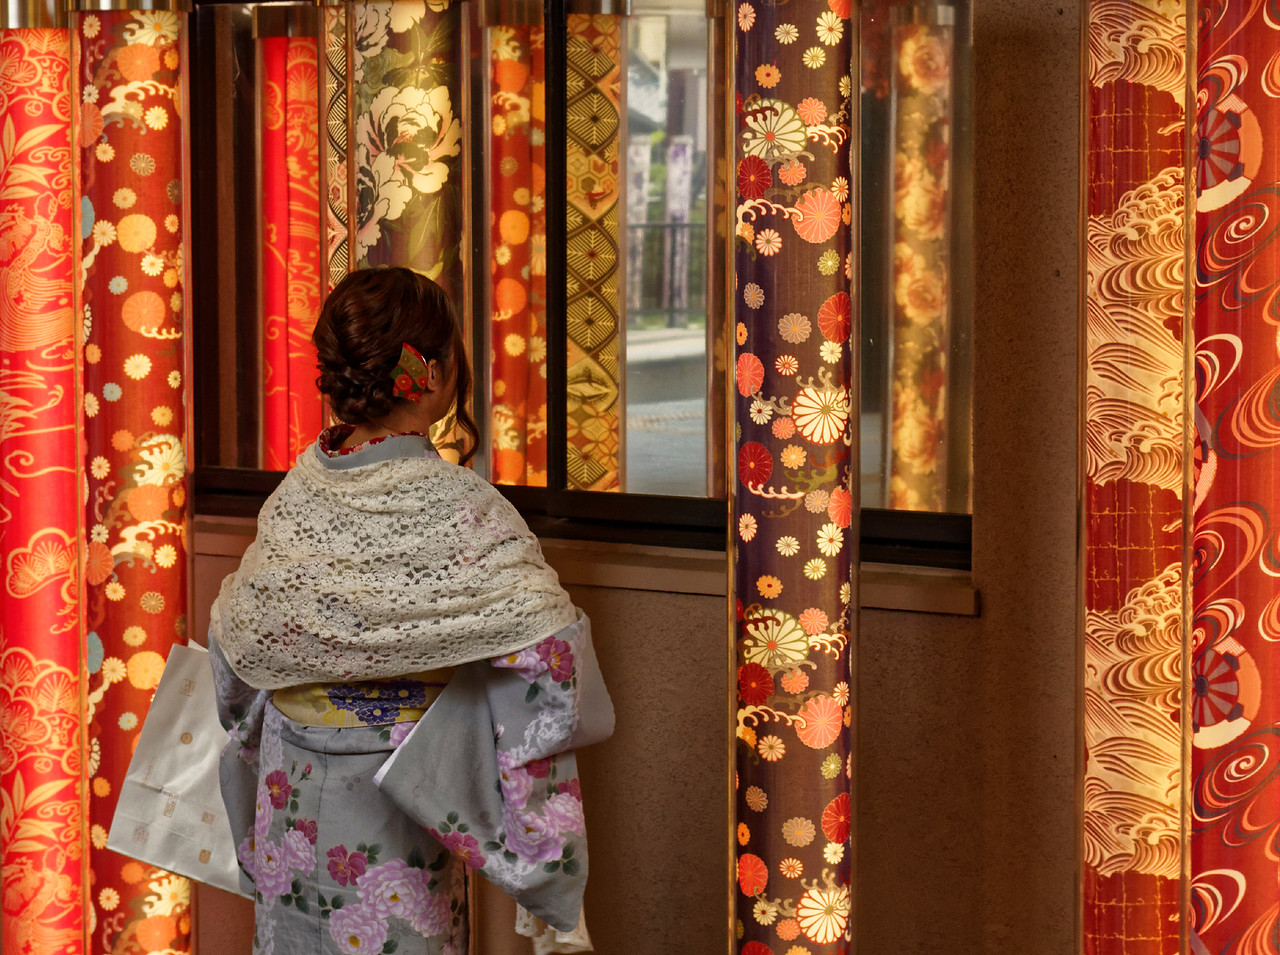 At the train station at Arashiyama, western Kyoto, kimono fabrics have been placed within tall, illuminated tubes, making for a very colorful display.